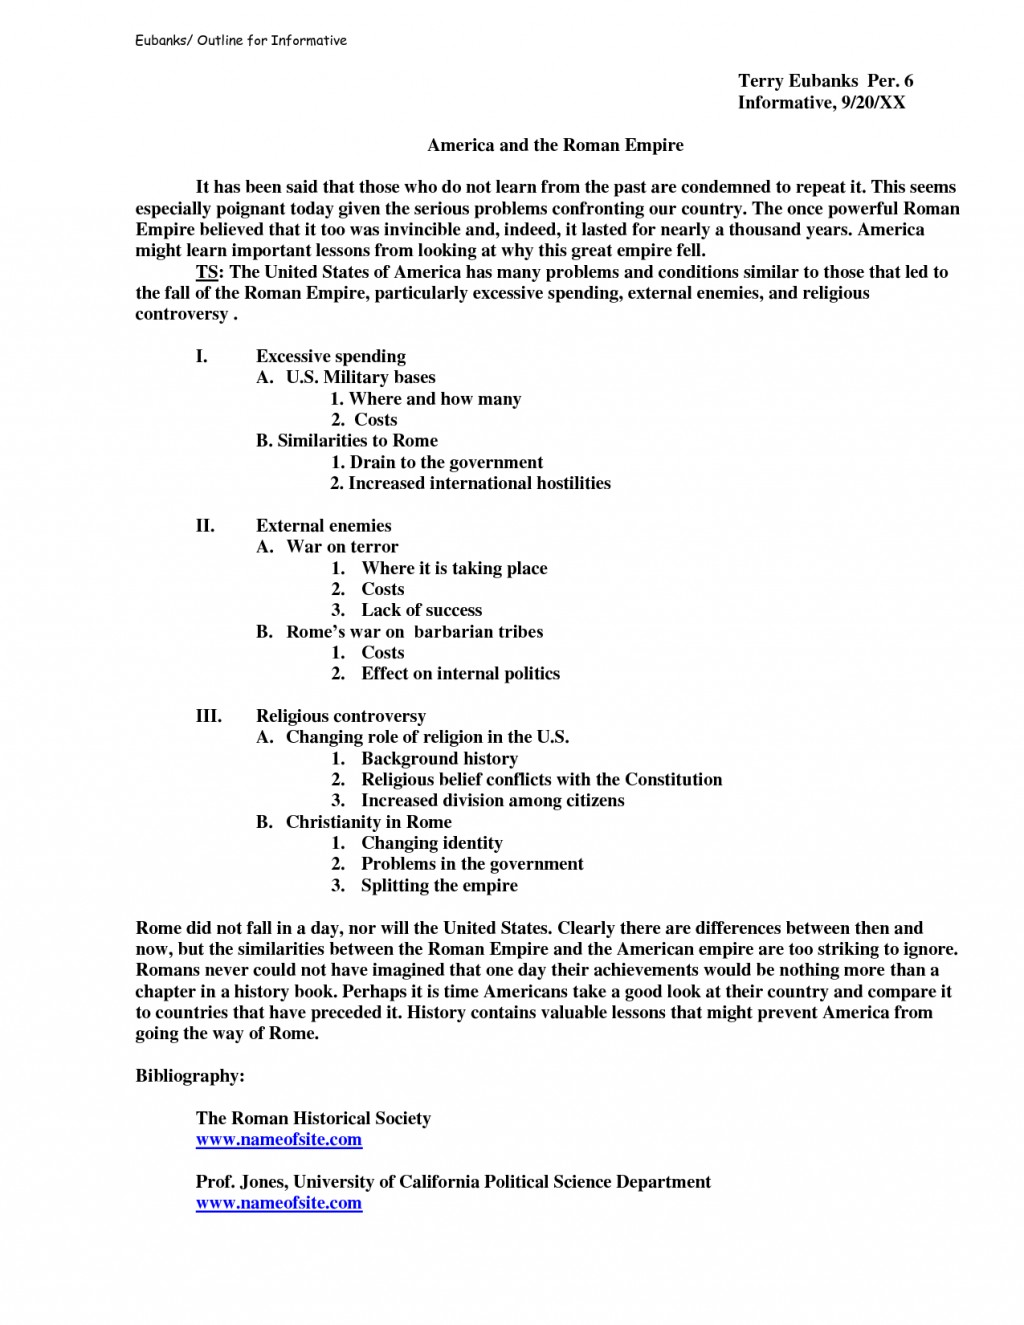 011 Essay Example Informative Speech Outline Template 4tvkvfcf An For Remarkable Should After Creating A Student Brainly The Include Quizlet Large